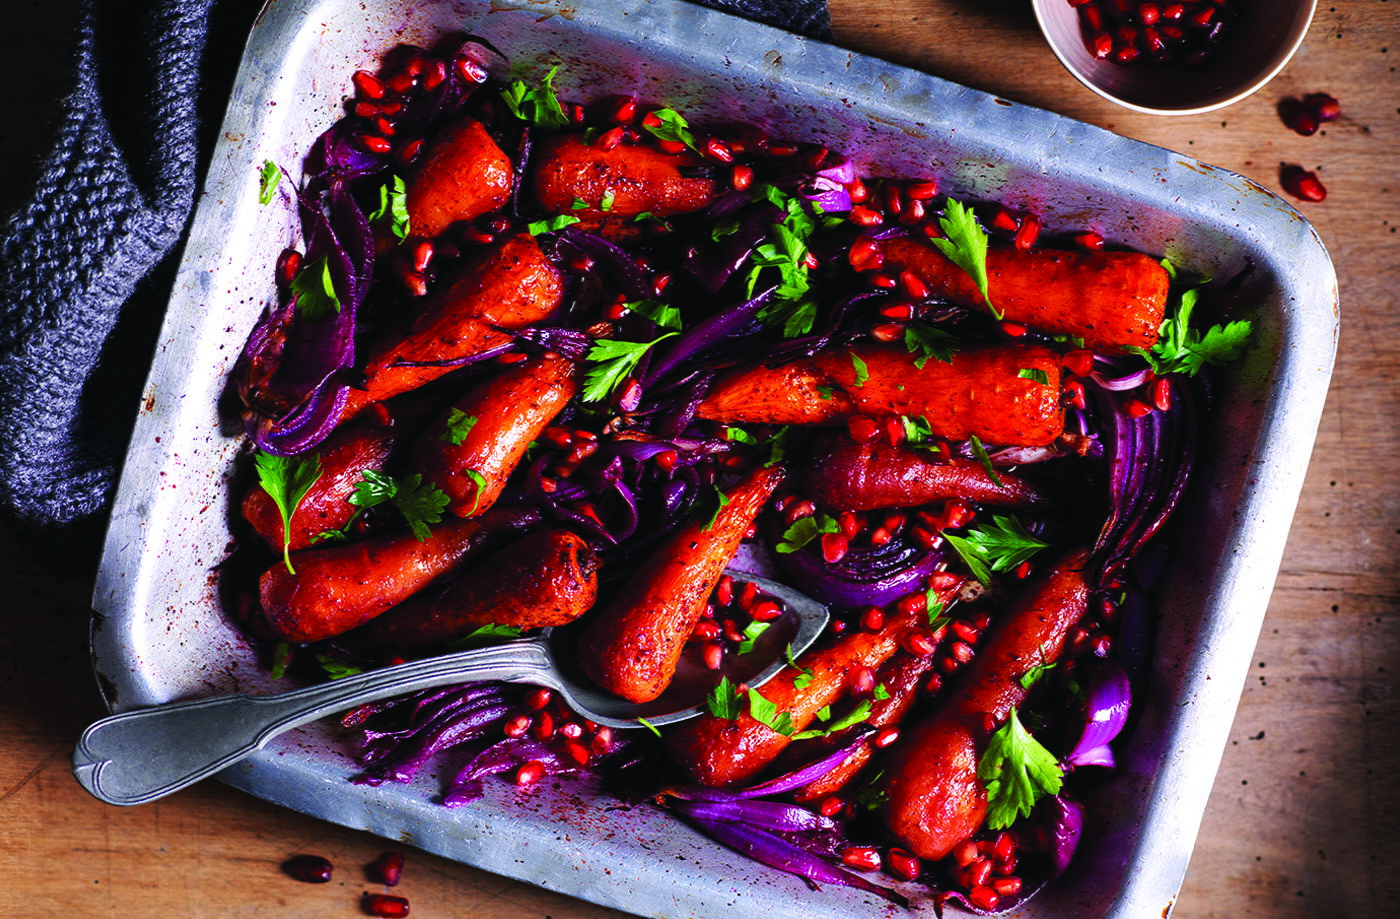 Roasted carrots and red onions with sumac recipe